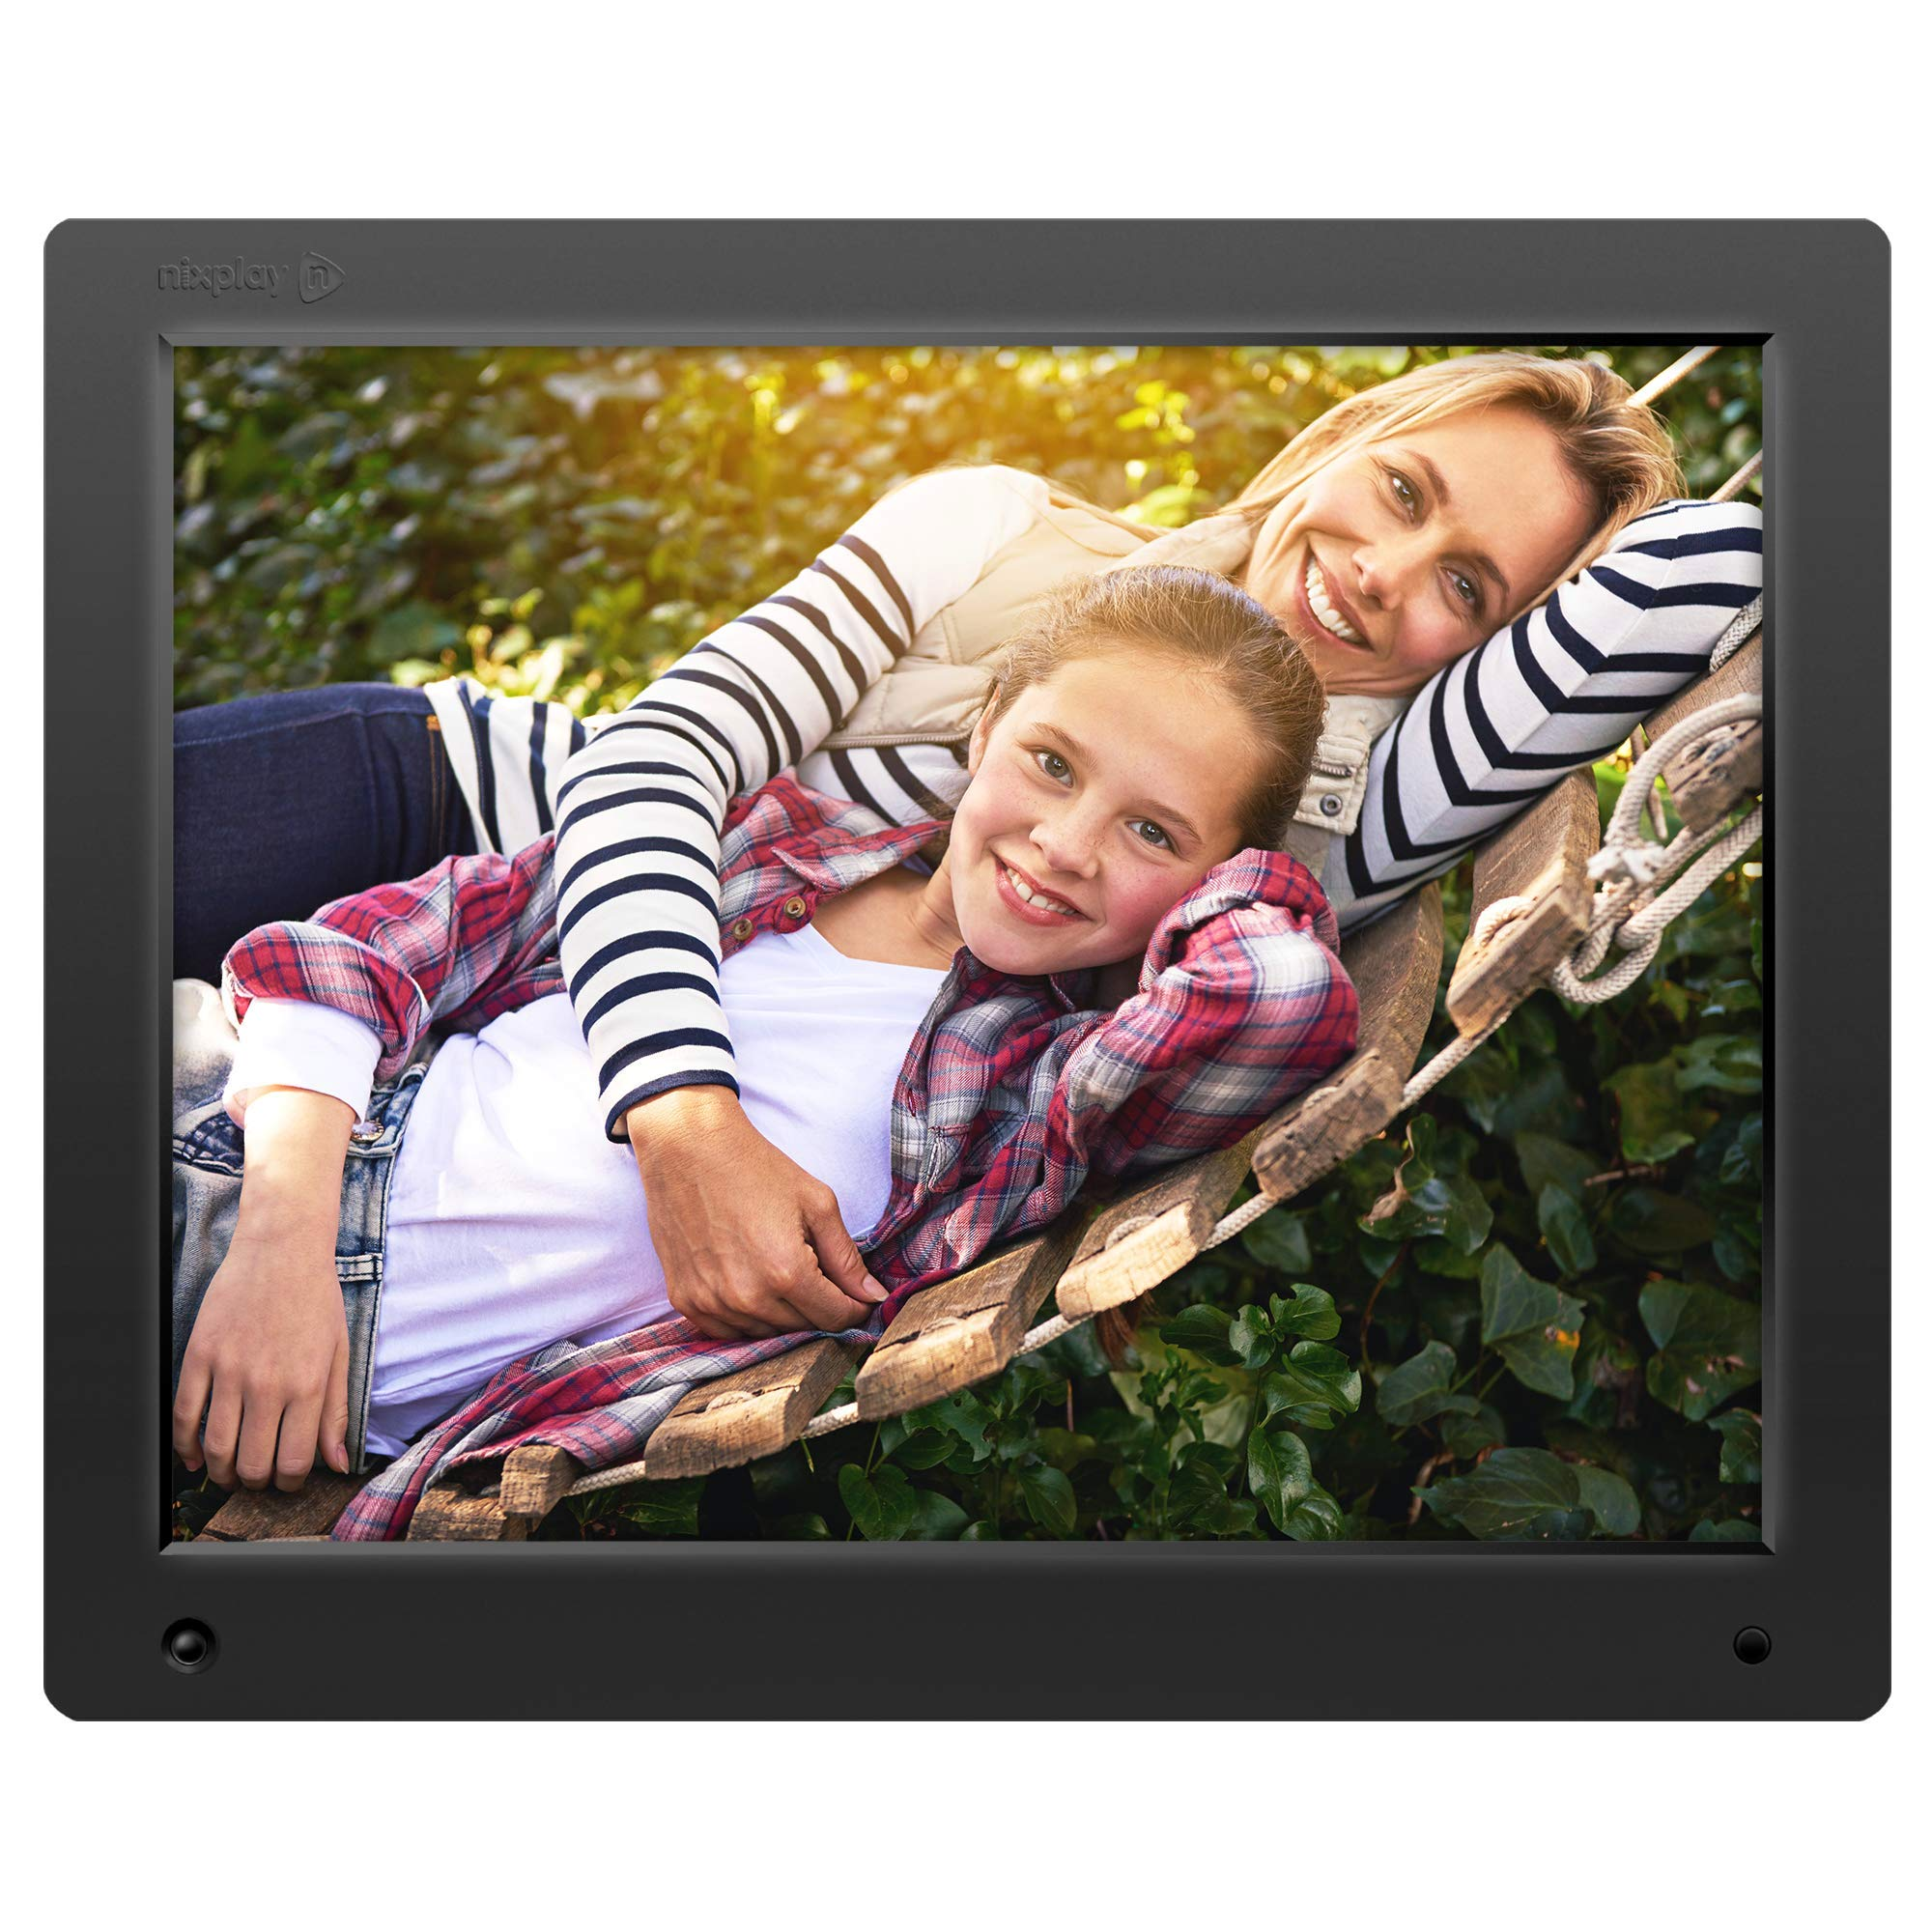 Nixplay Original 15 inch WiFi Cloud Digital Photo Frame. iPhone & Android App, Email